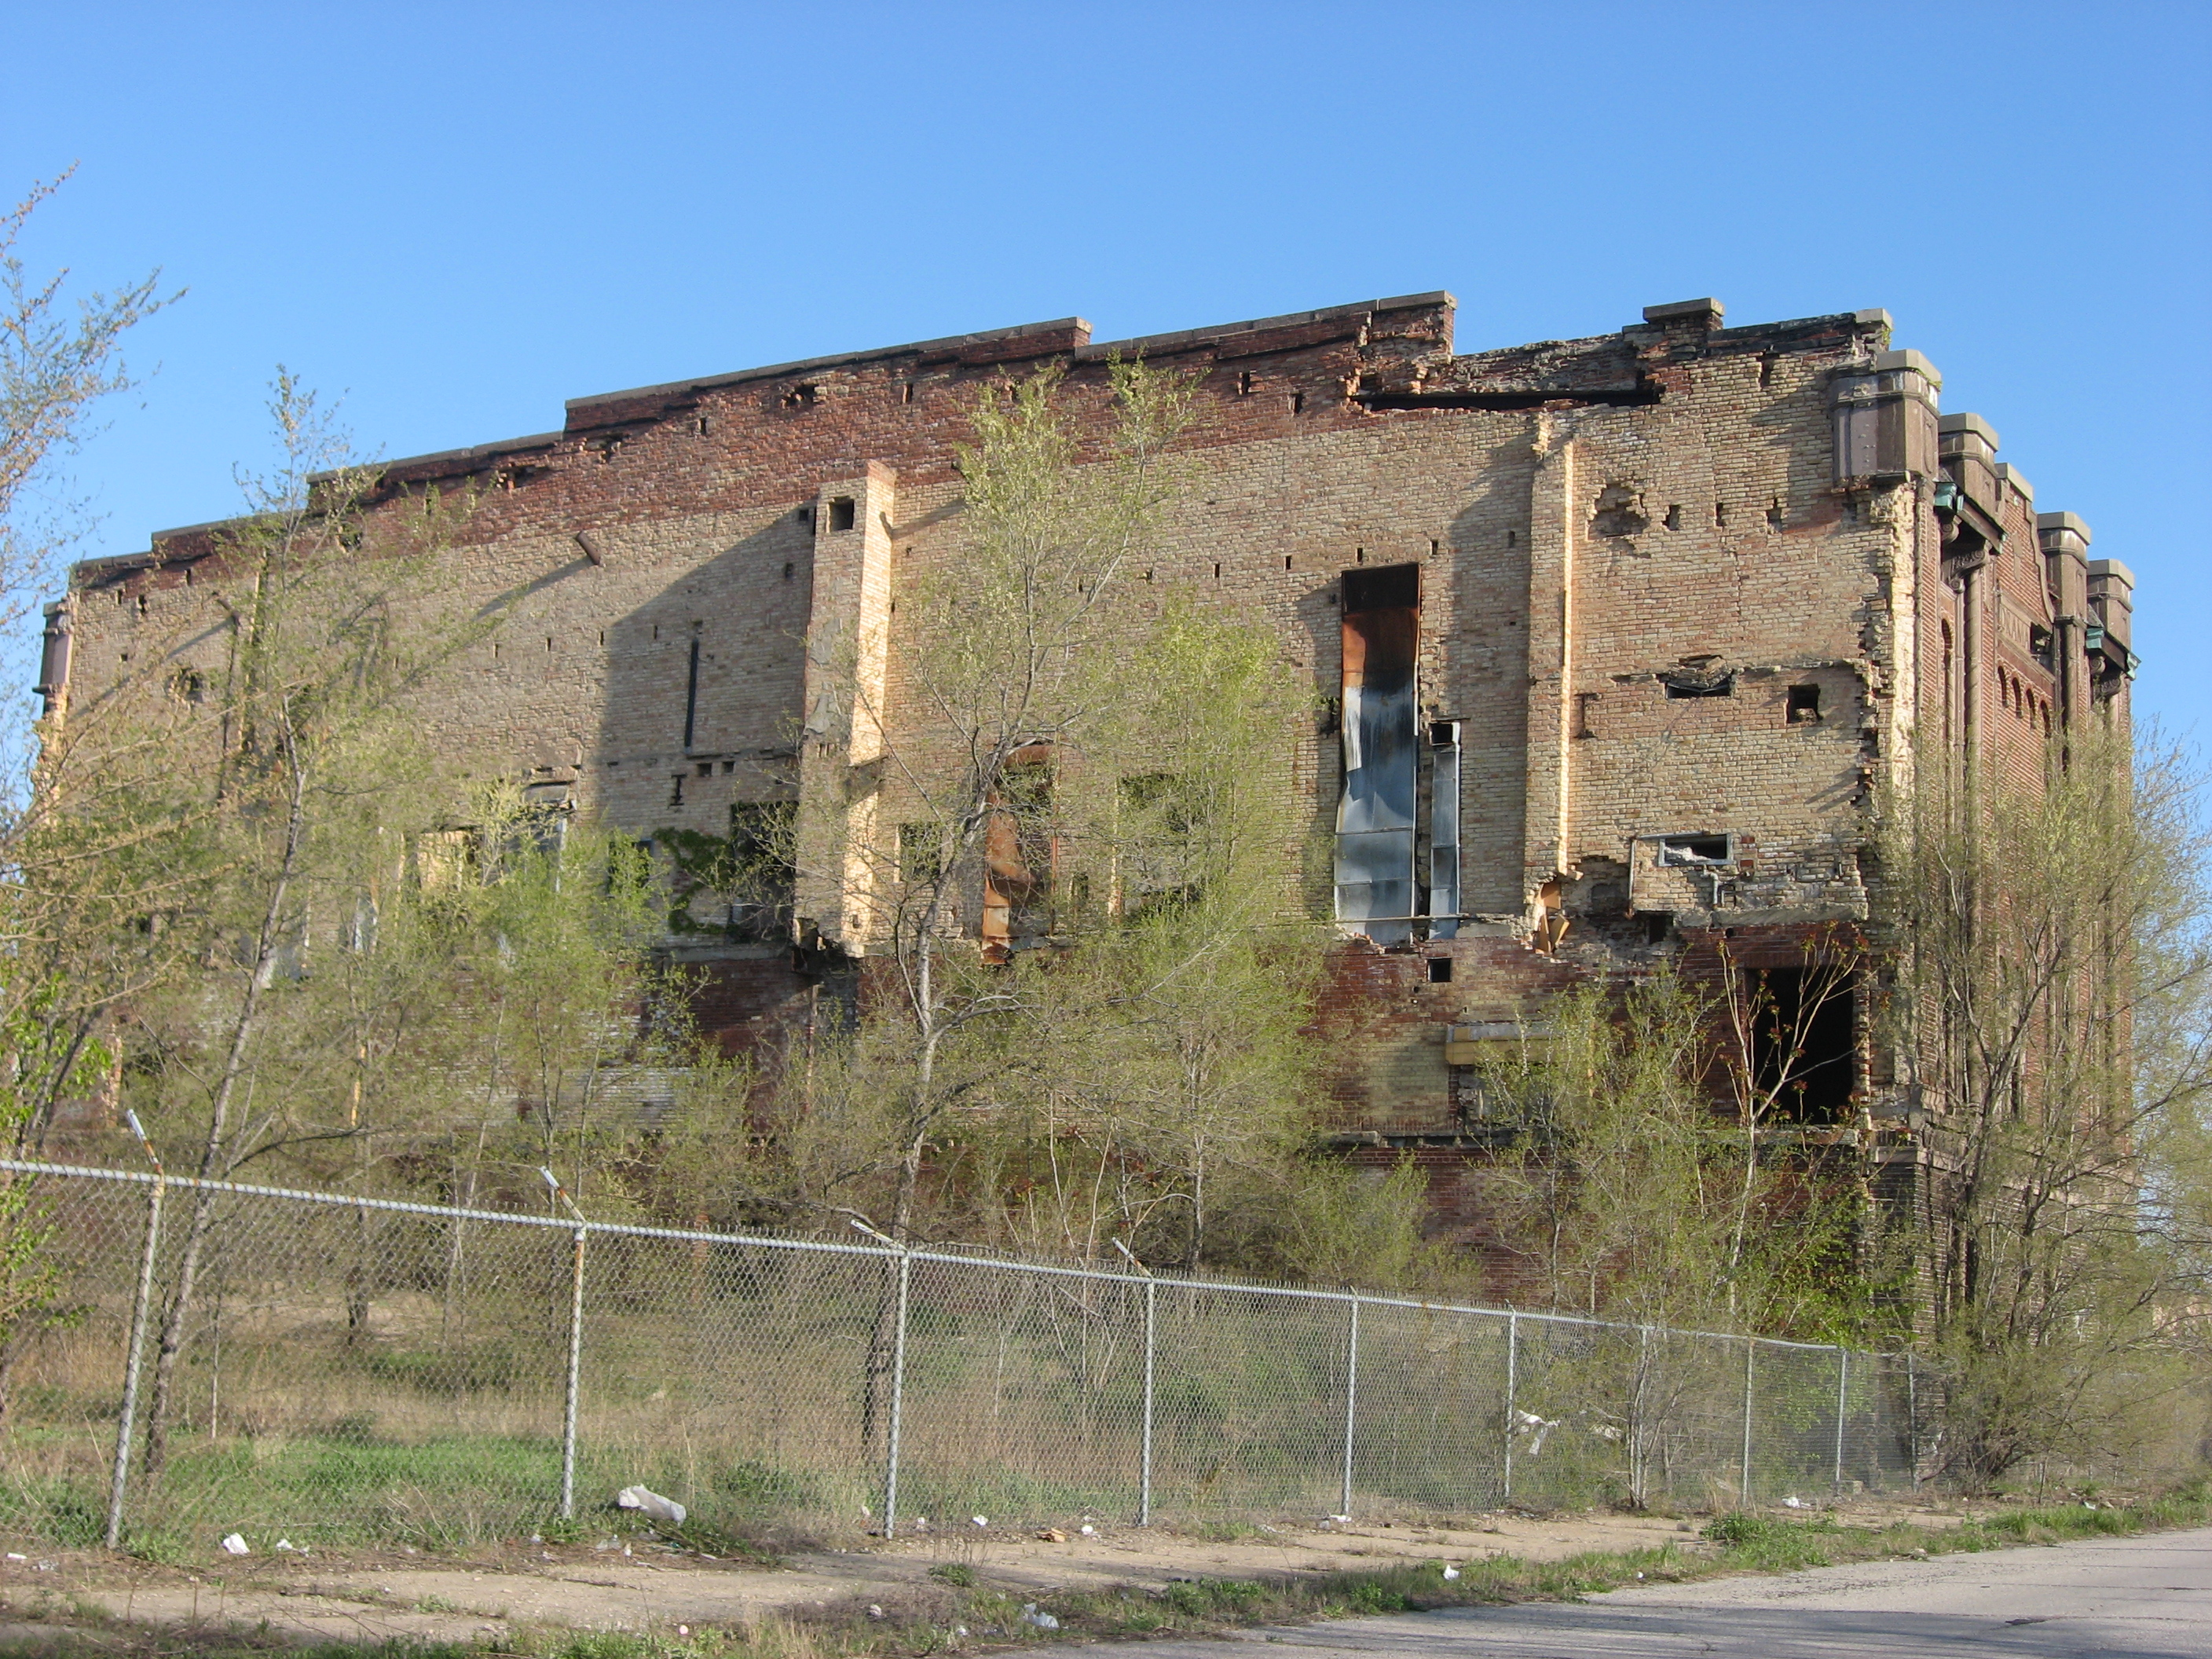 side view of abandoned building